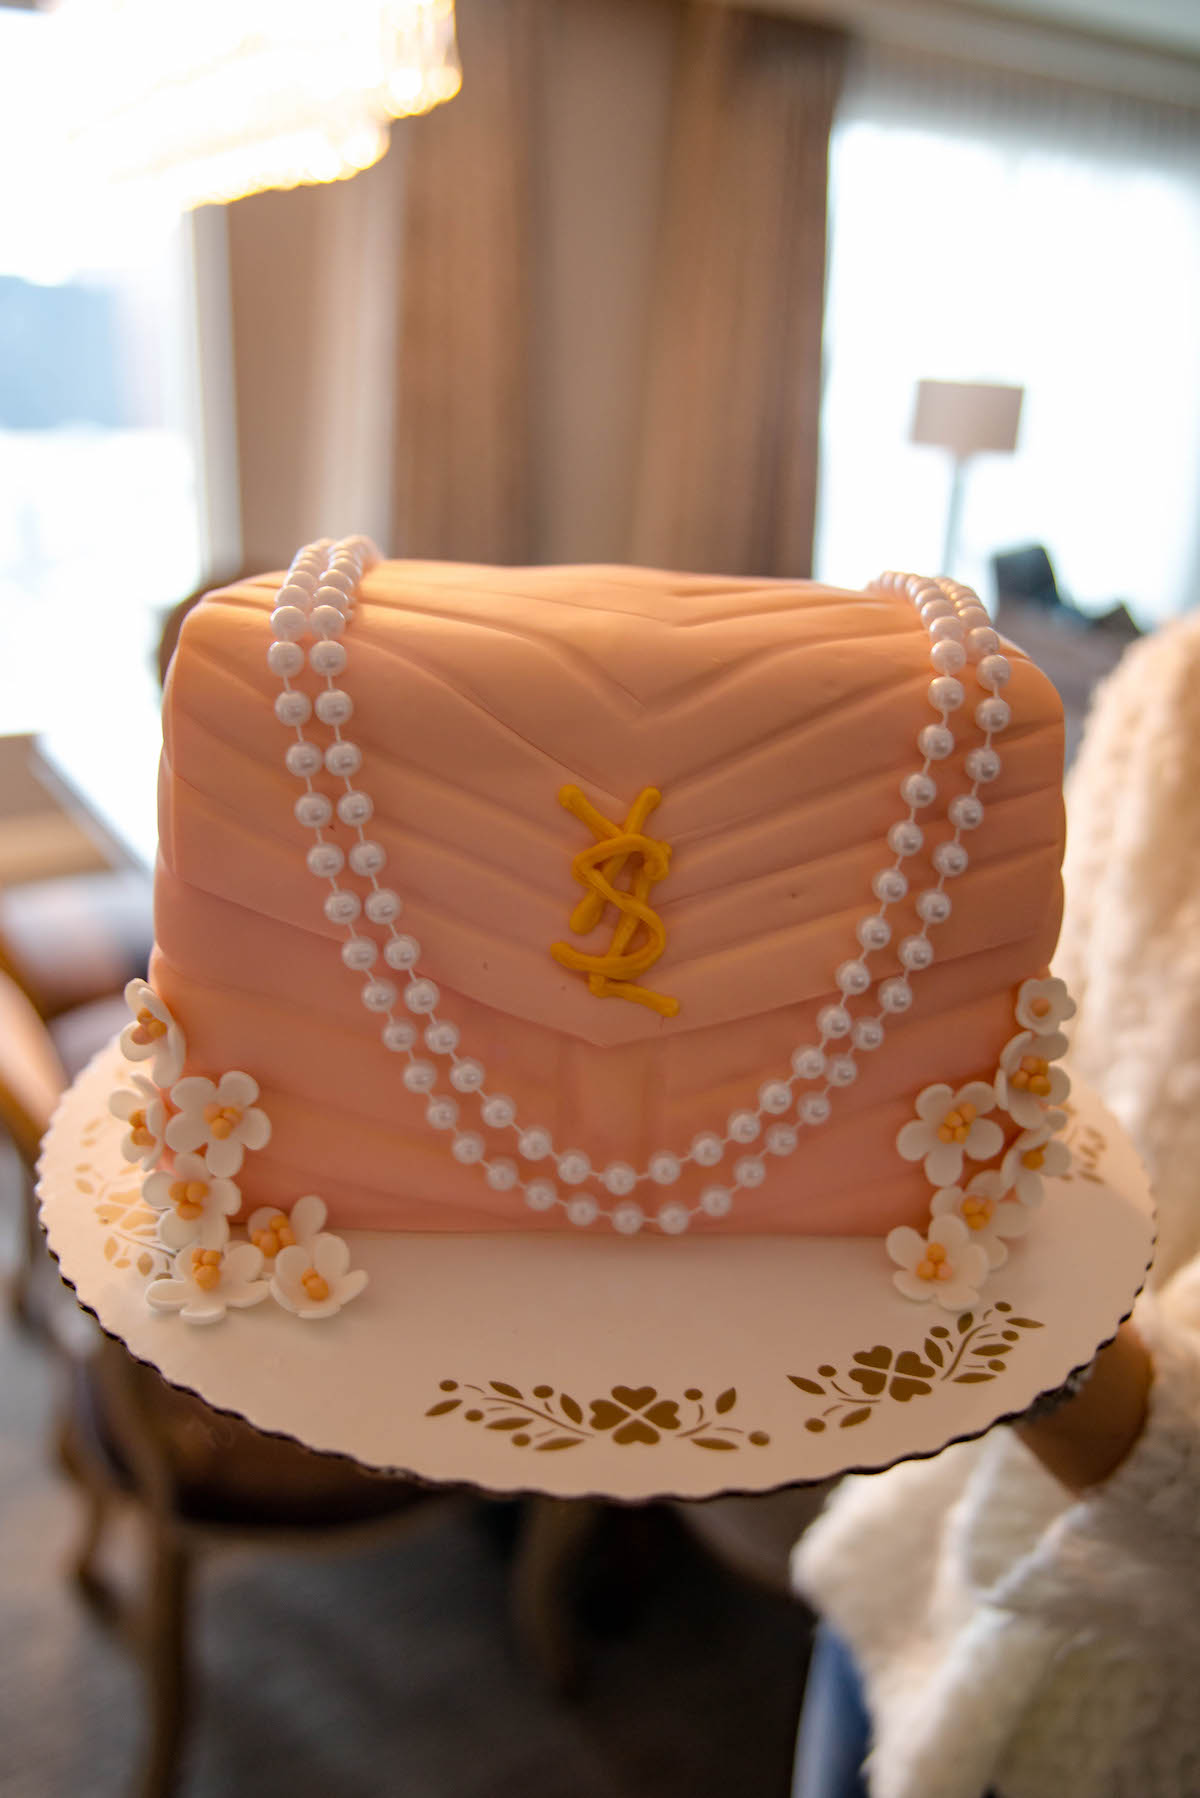 Saint Laurent Bag Cake